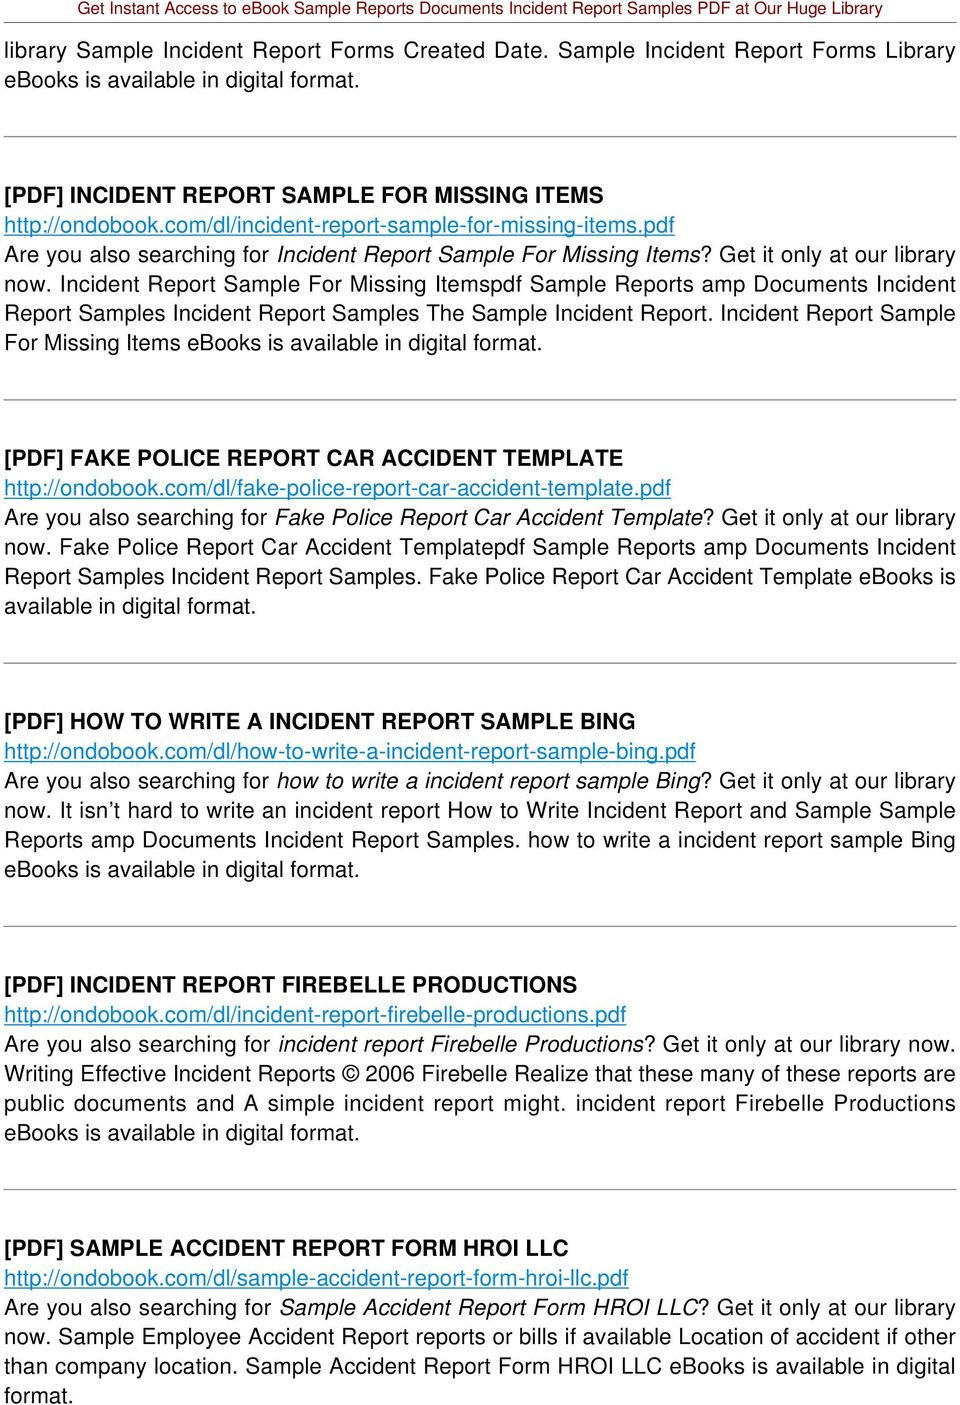 Incident Report Sample For Missing Itemspdf Sample Reports amp Documents Incident Report Samples Incident Report Samples The Sample Incident Report.